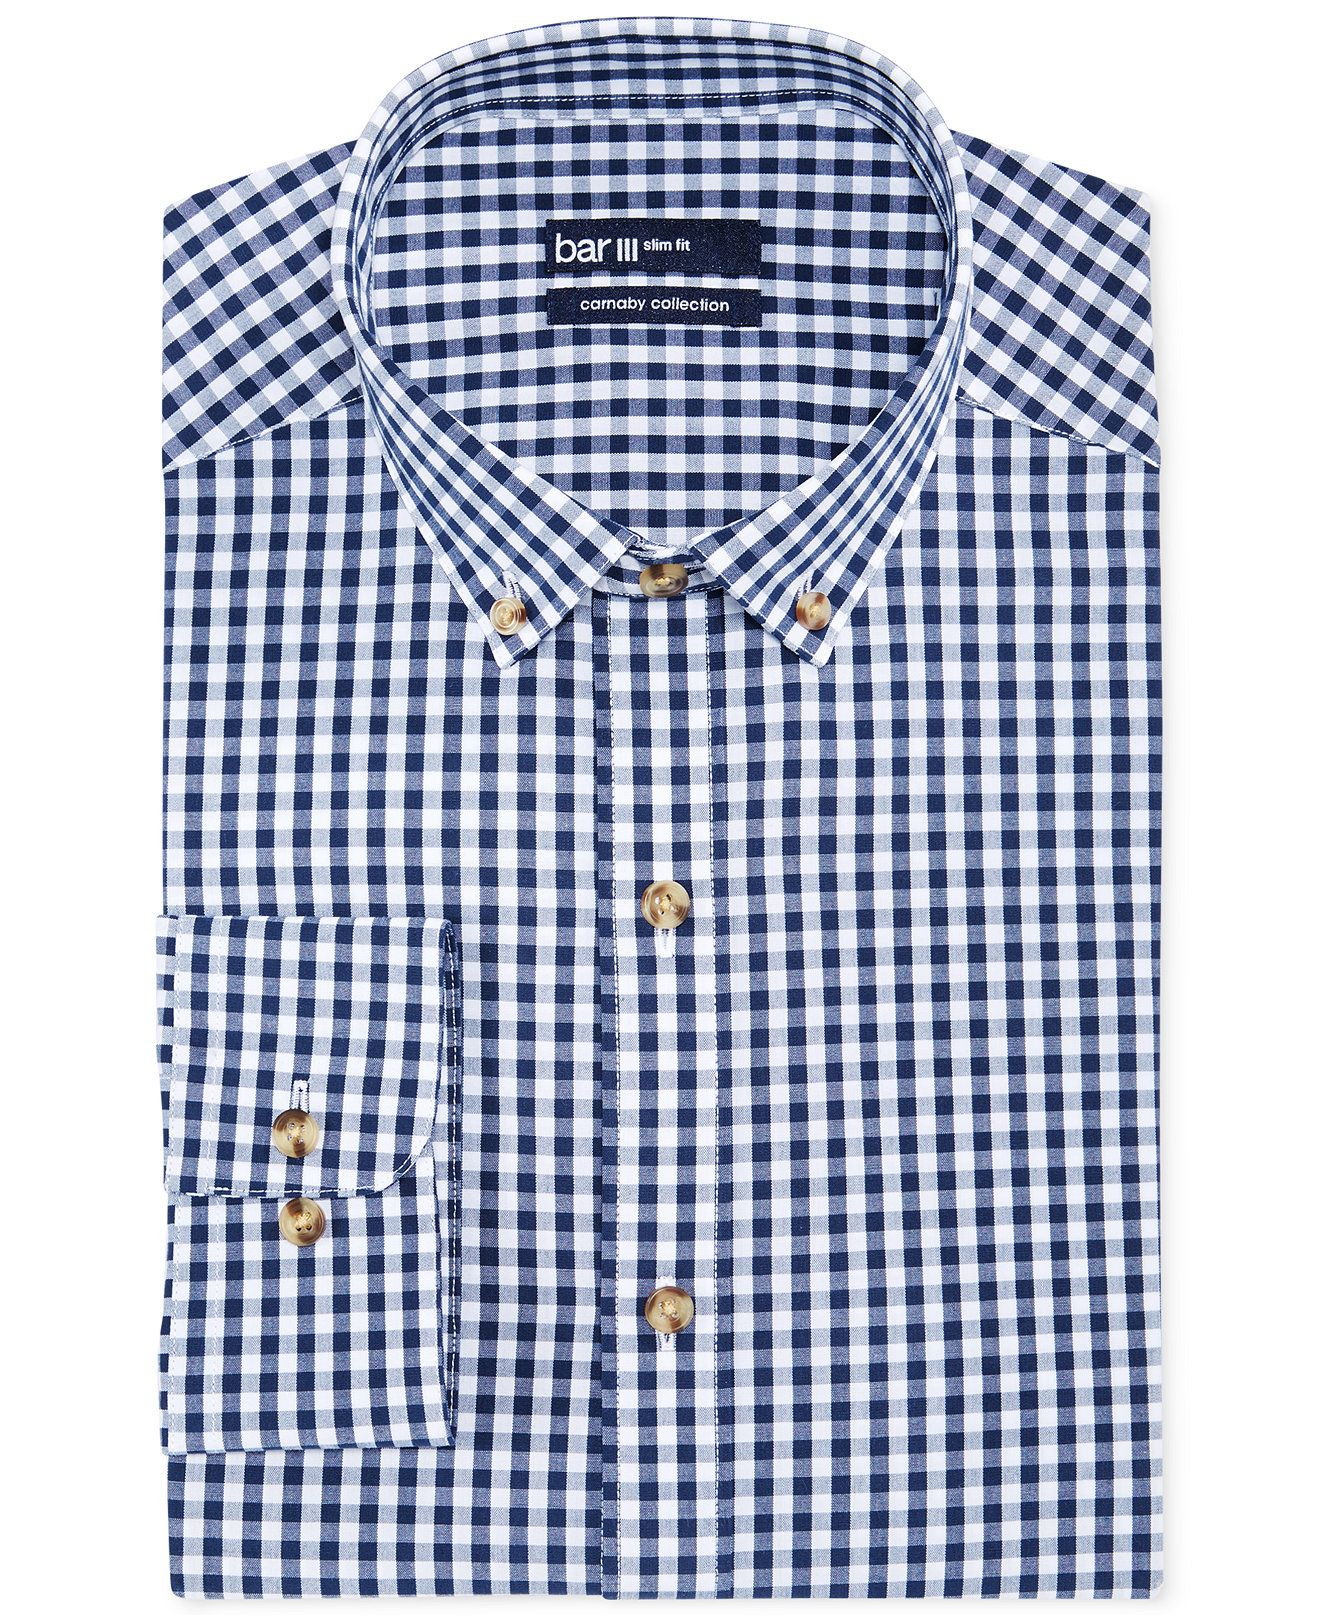 1a074aa41ece Reg $57.50 Bar III Carnaby Collection Slim-Fit Navy and White Gingham Dress  Shirt - Dress Shirts - Men - Macy's